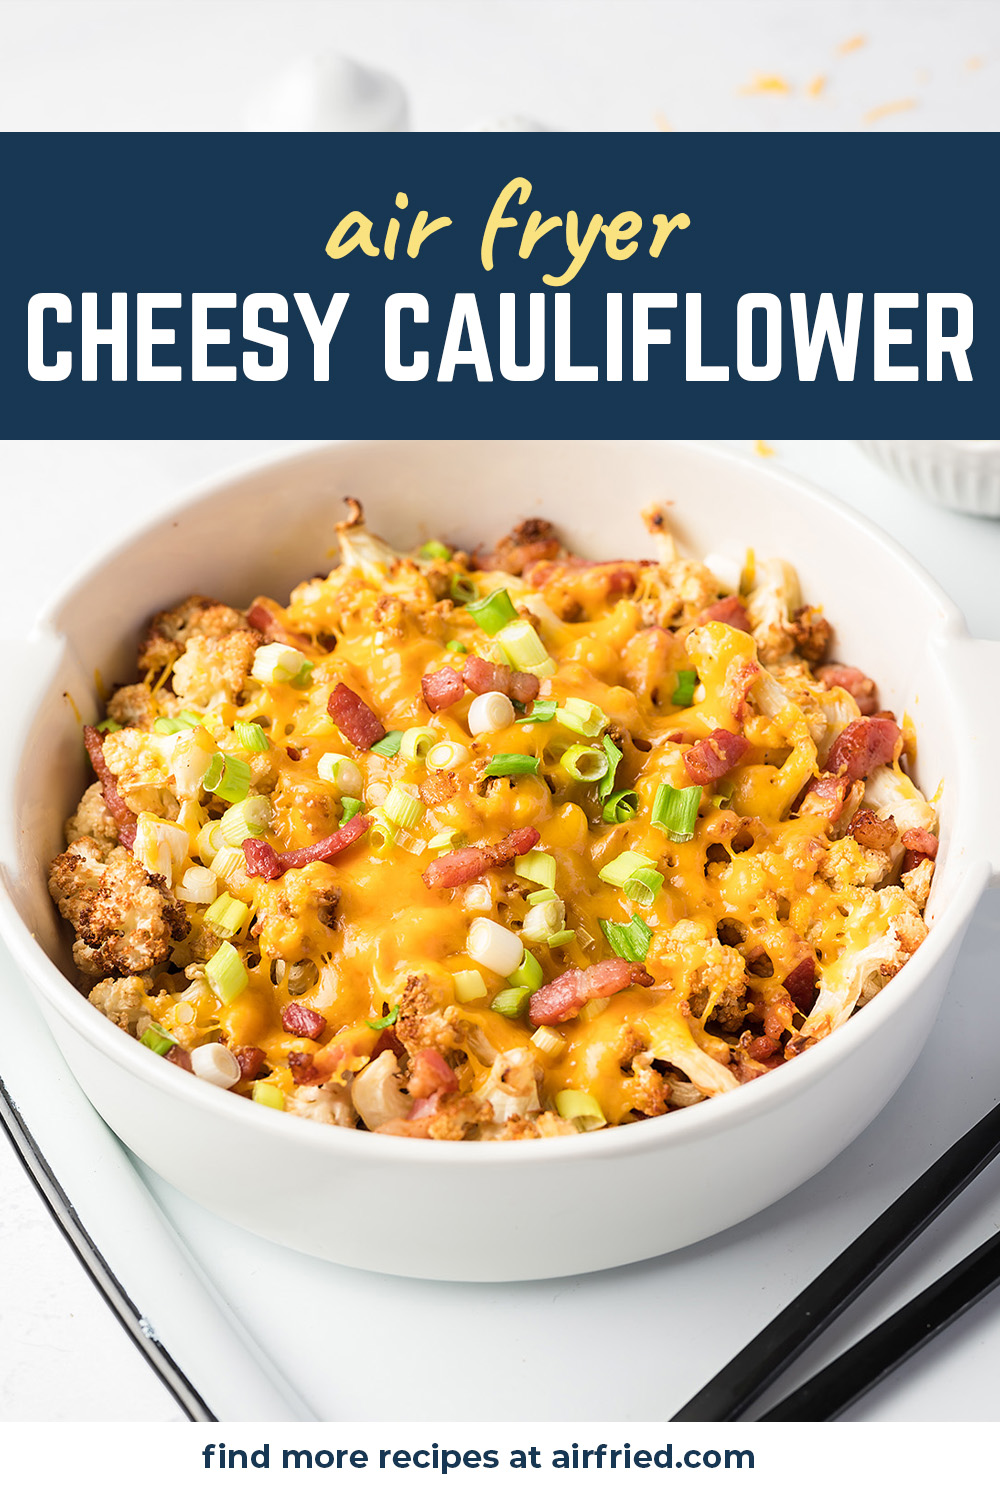 This air fried cauliflower recipe is lightly seasoned and loaded with bacon, cheese, and green onions.  So good!